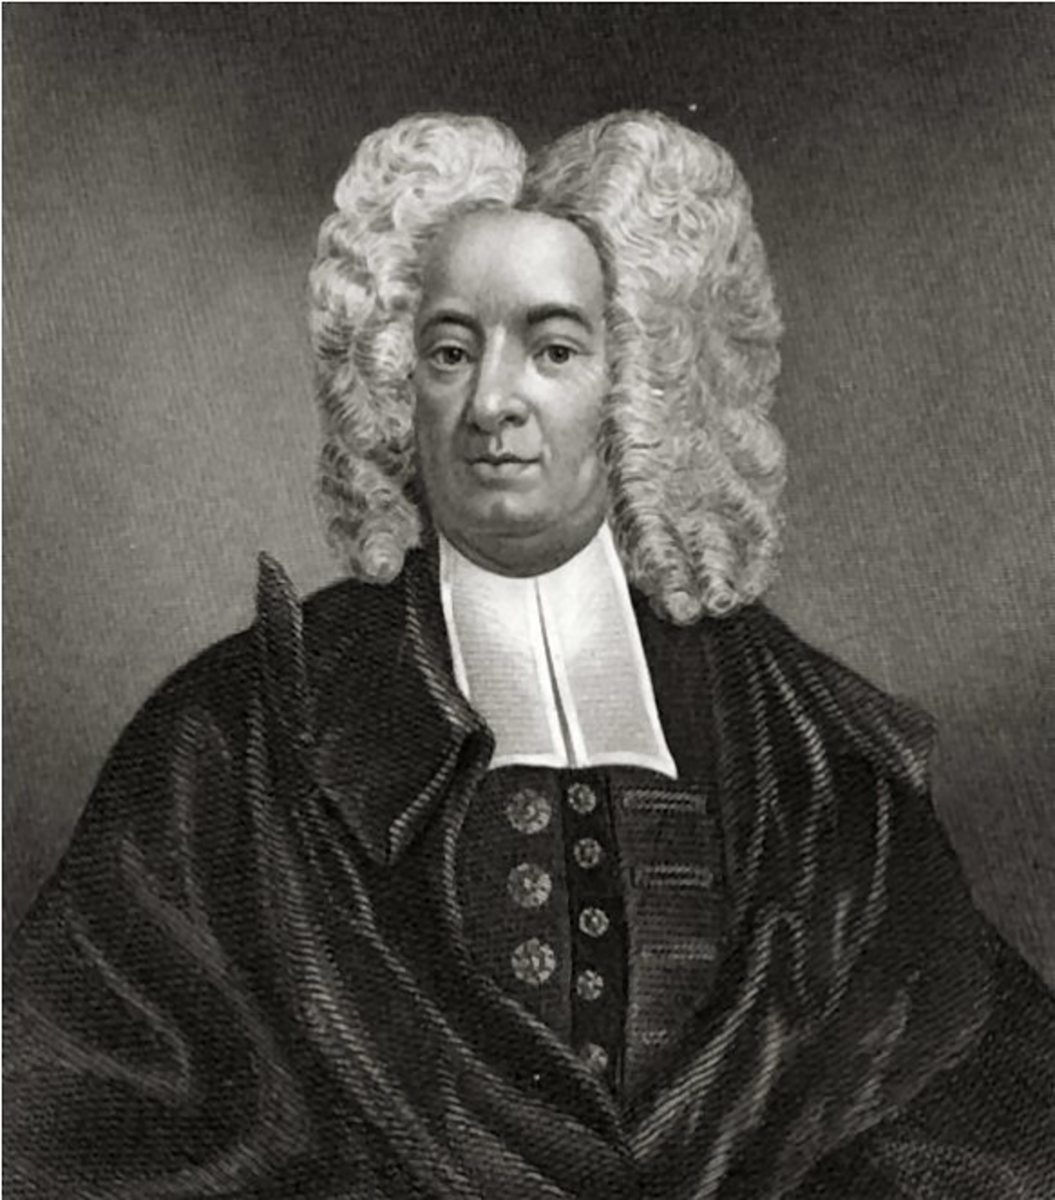 Cotton Mather was a Puritan minister, prolific author and pamphleteer